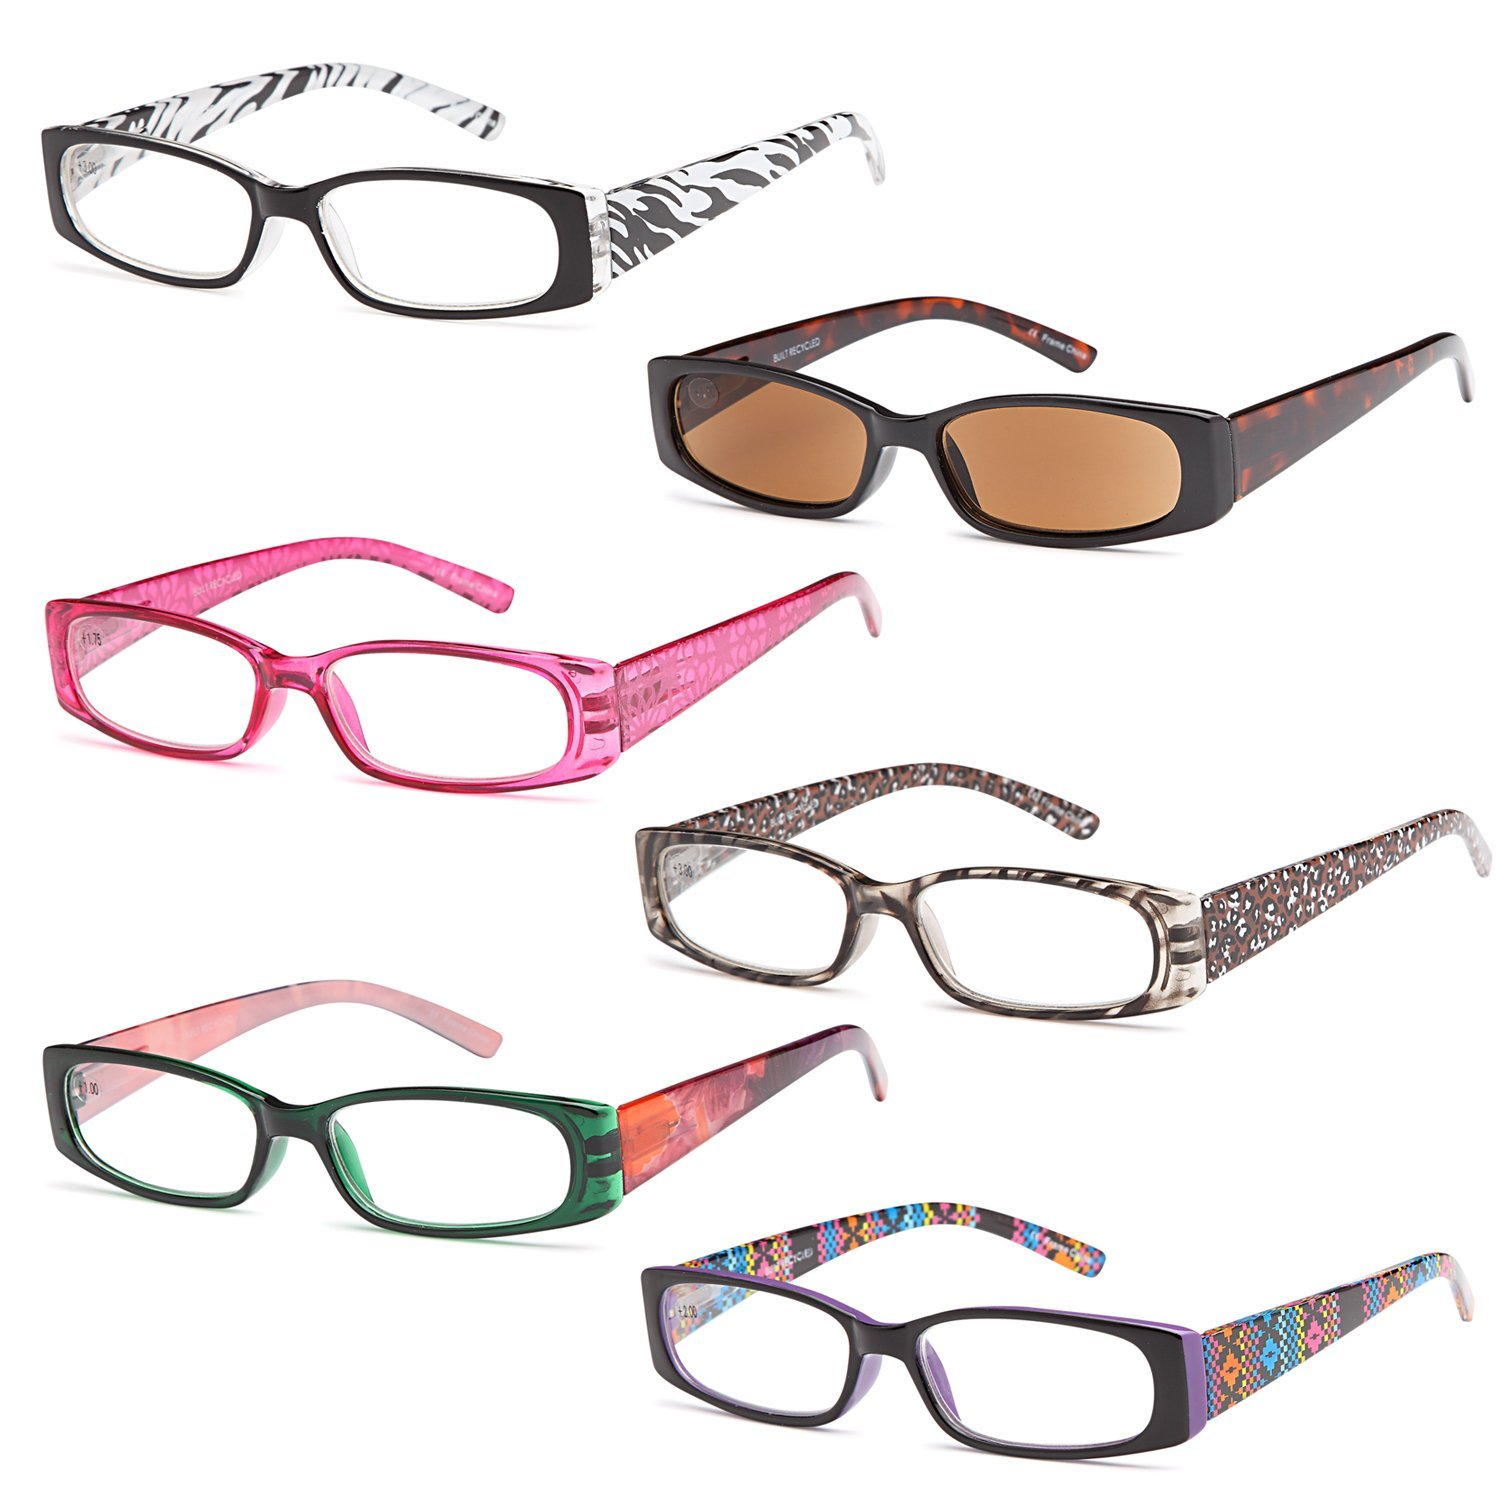 GAMMA RAY READERS 6 Pairs Ladies' Readers includes Sunglass Reader Quality Spring Hinge Reading Glasses for Women by Gamma Ray Optics